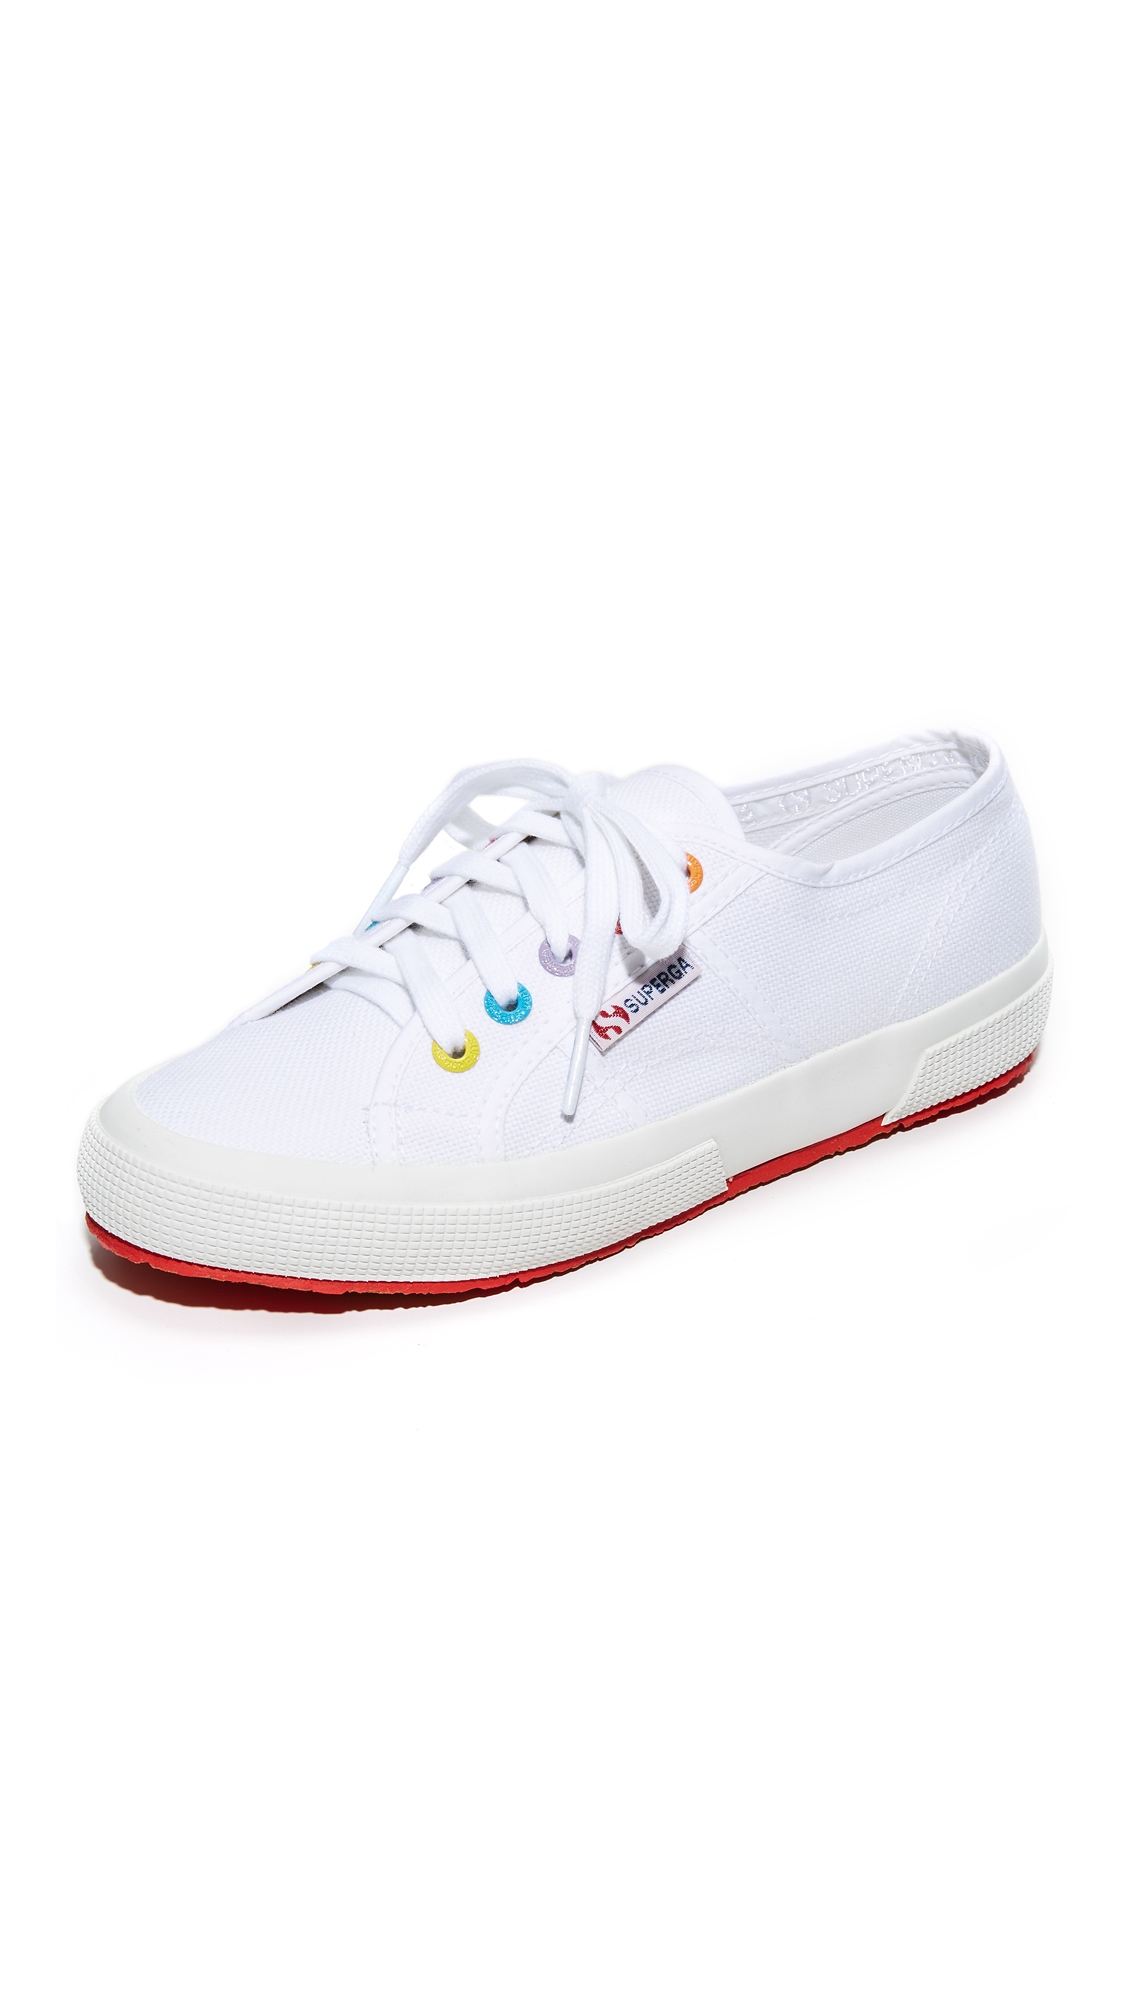 Superga 2750 Multi Eyelet Classic Sneakers - White Multi